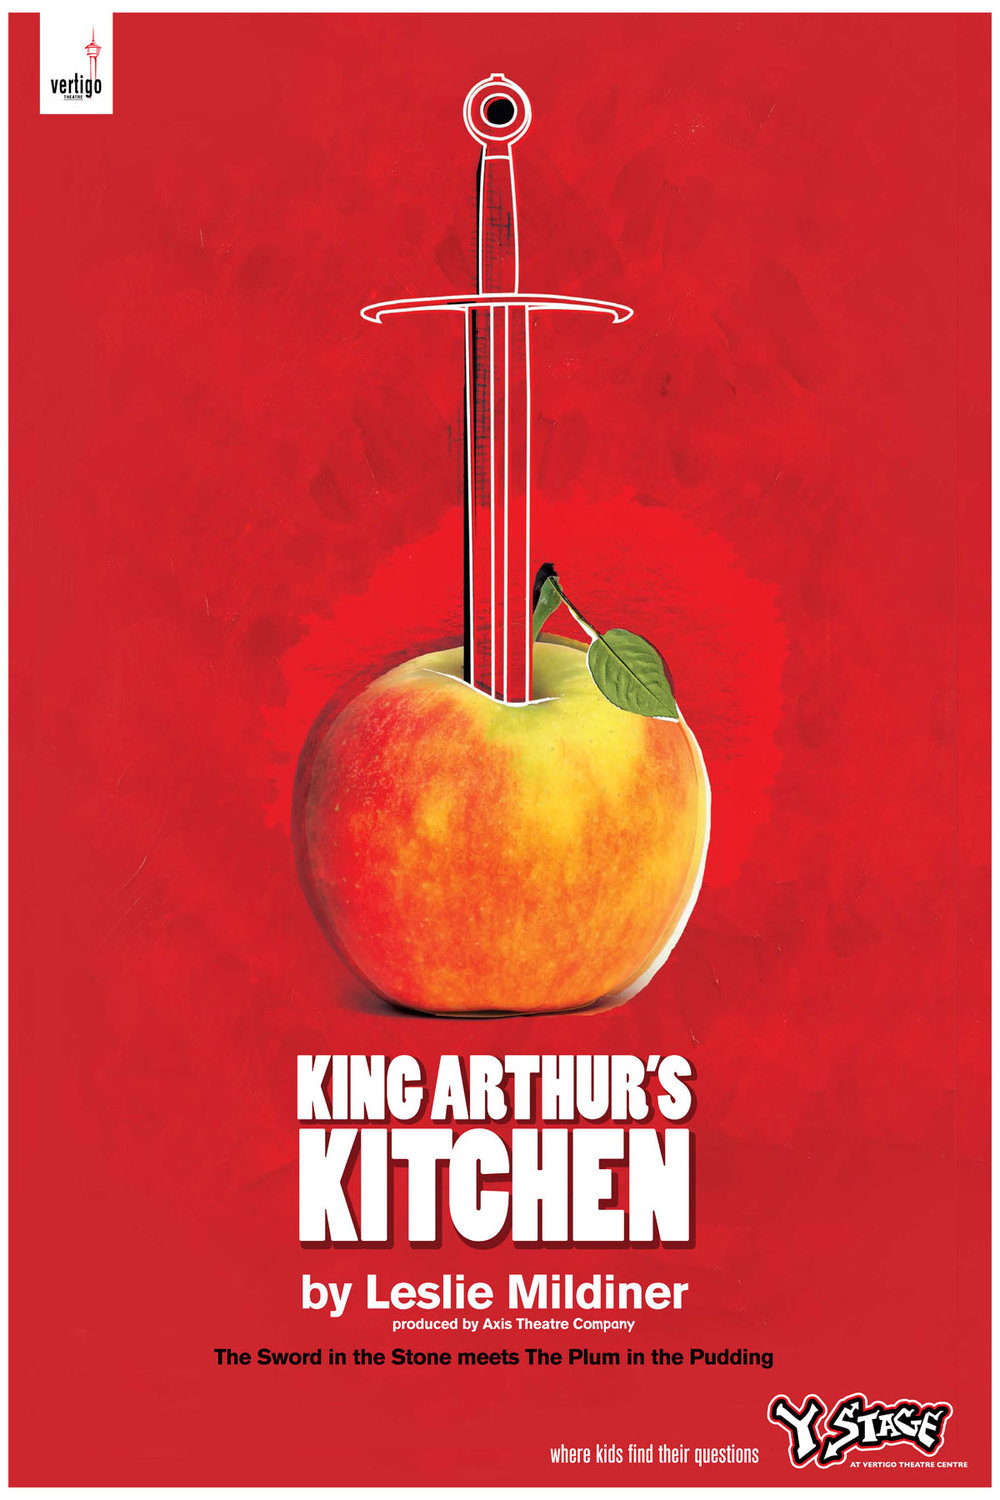 KING ARTHUR'S KITCHEN